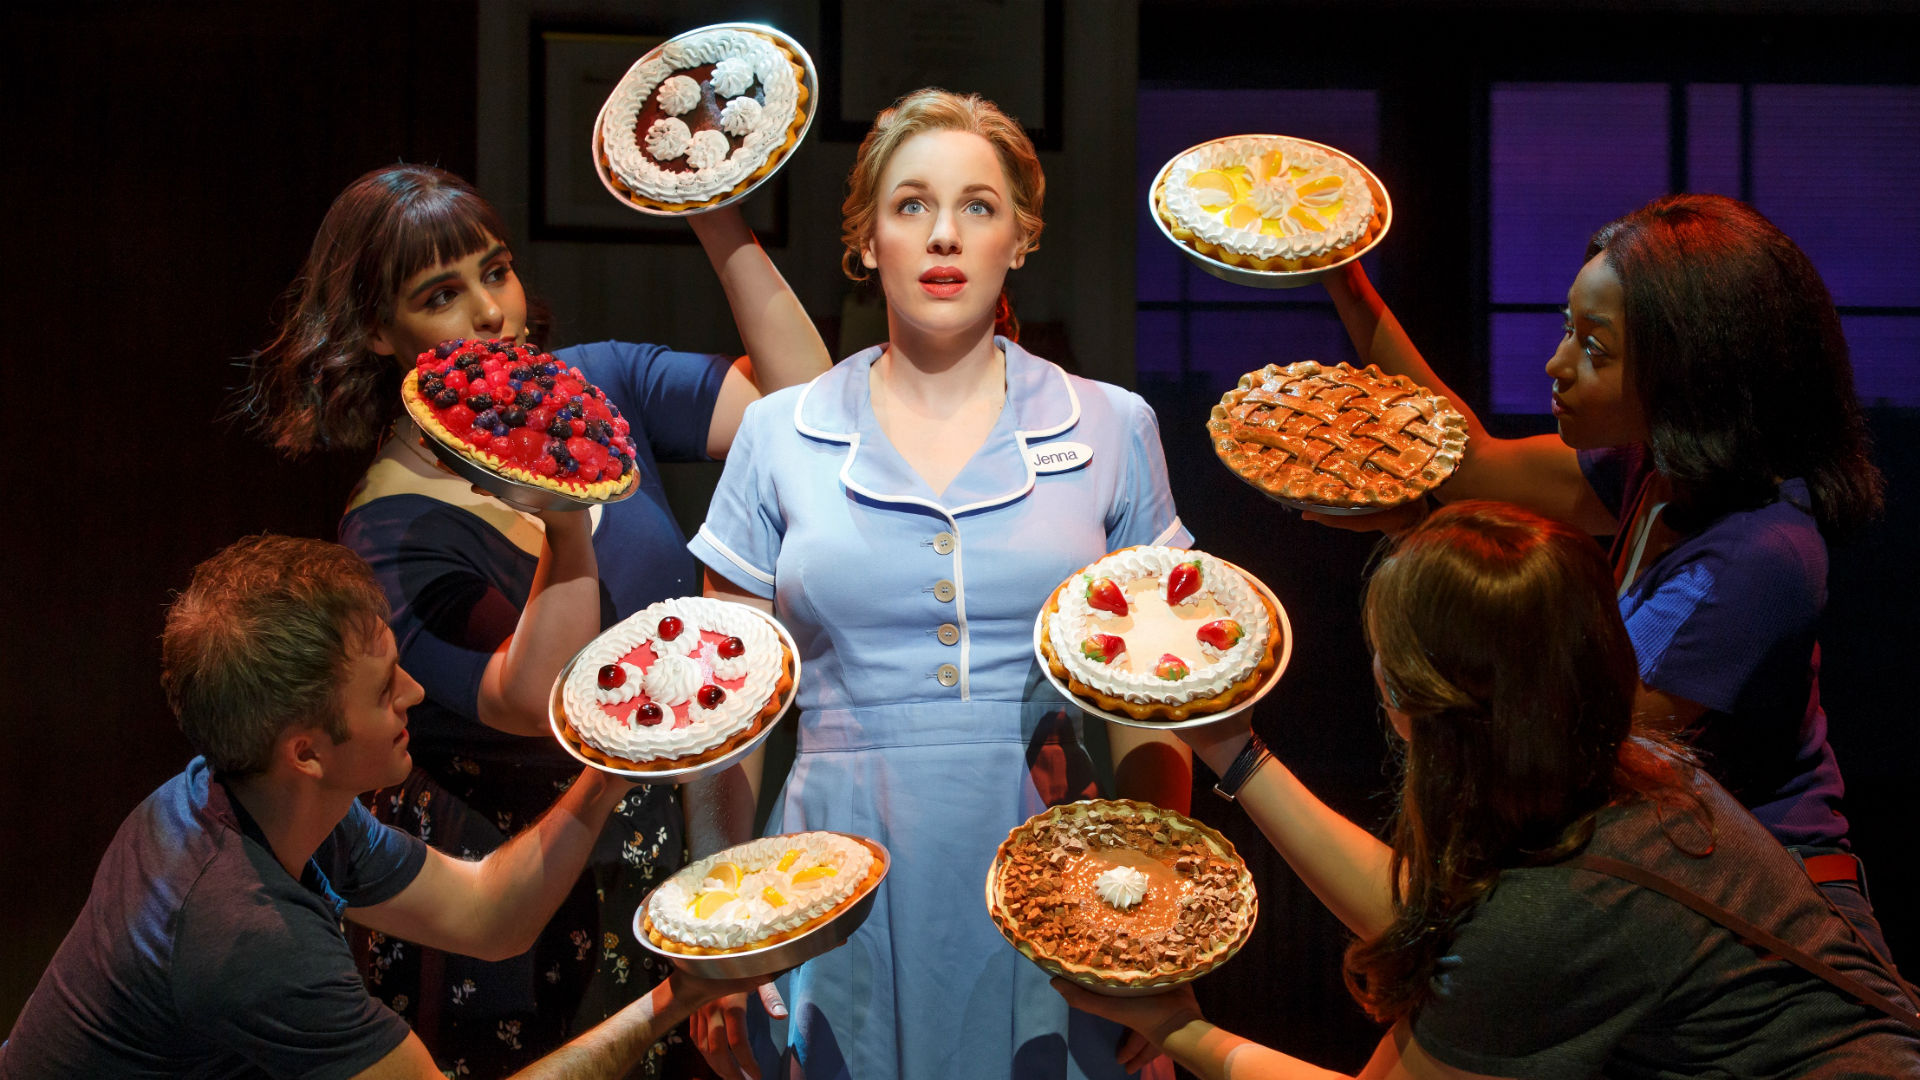 A waitress is standing surrounded by 4 people looking at her and holding pies and cakes close to her